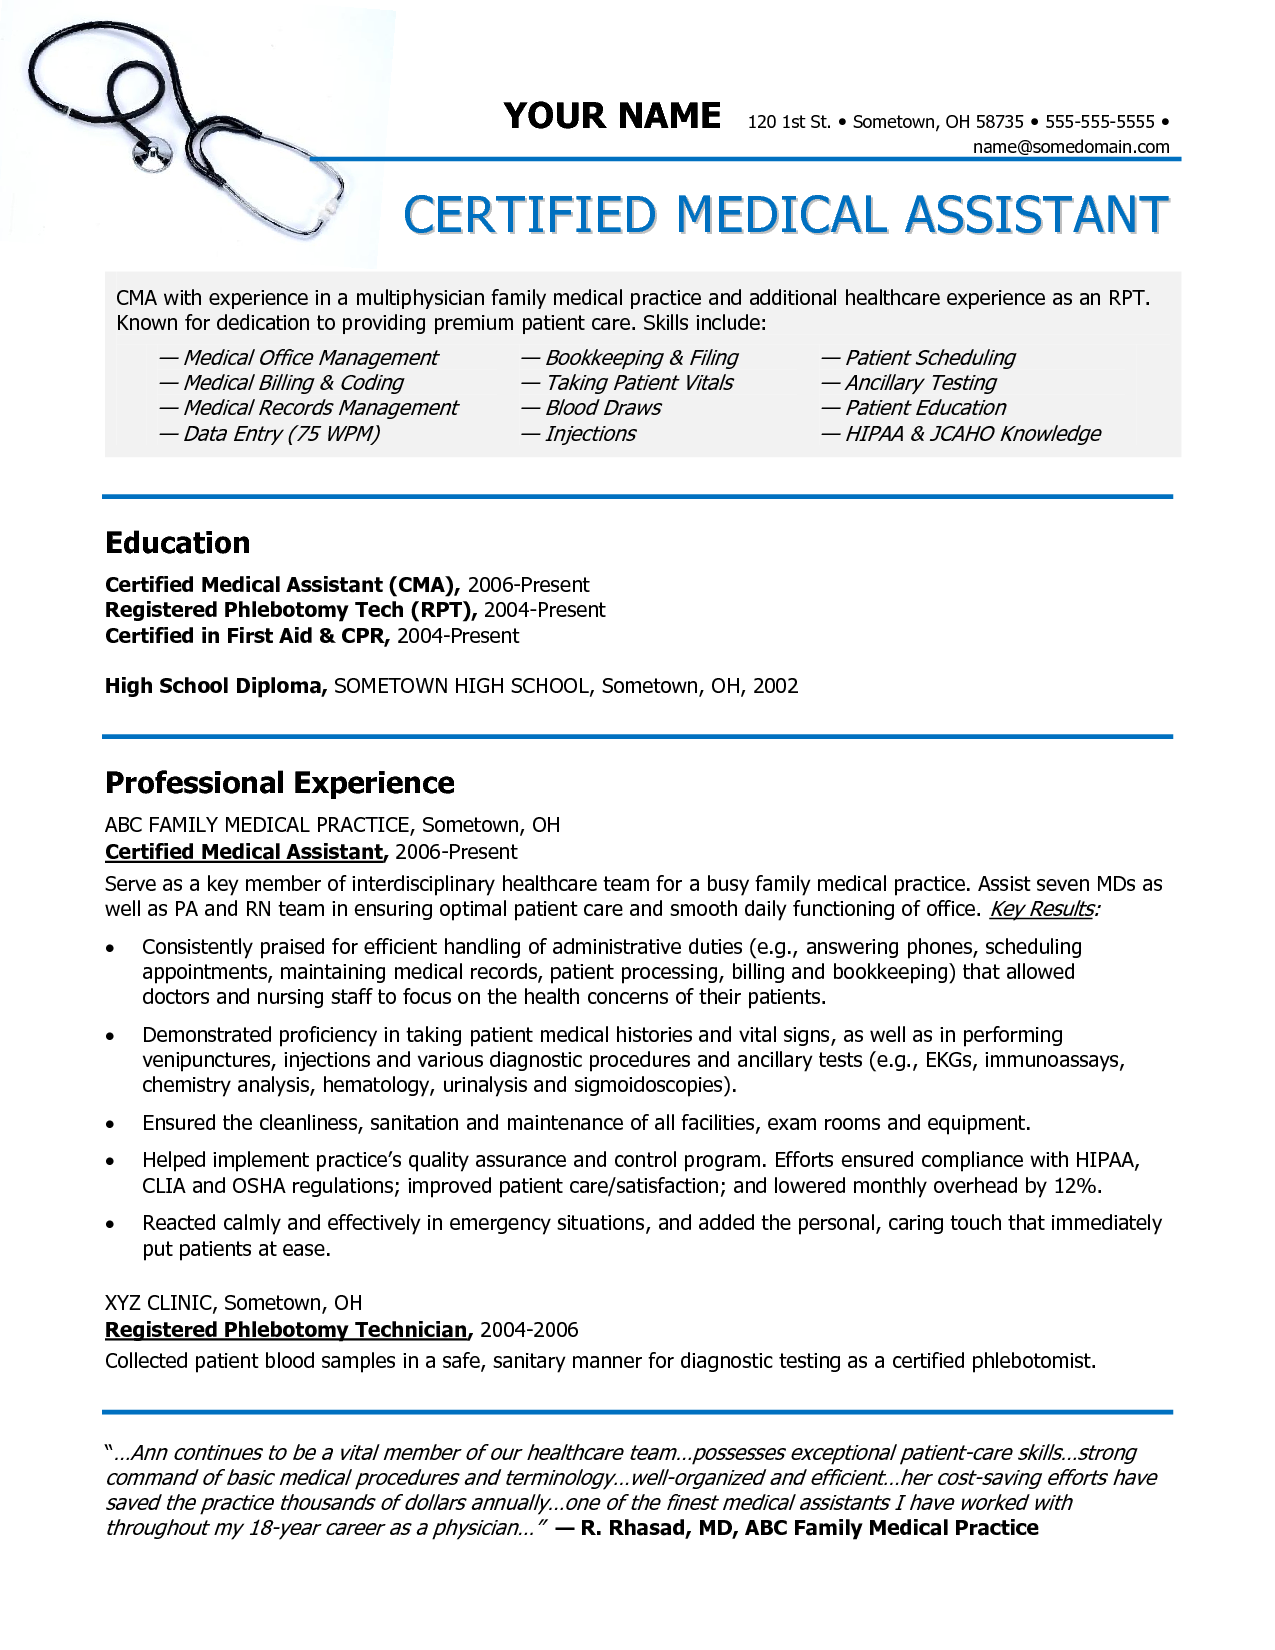 cma resume sample also medical assistant resume entry level examples medical assistant